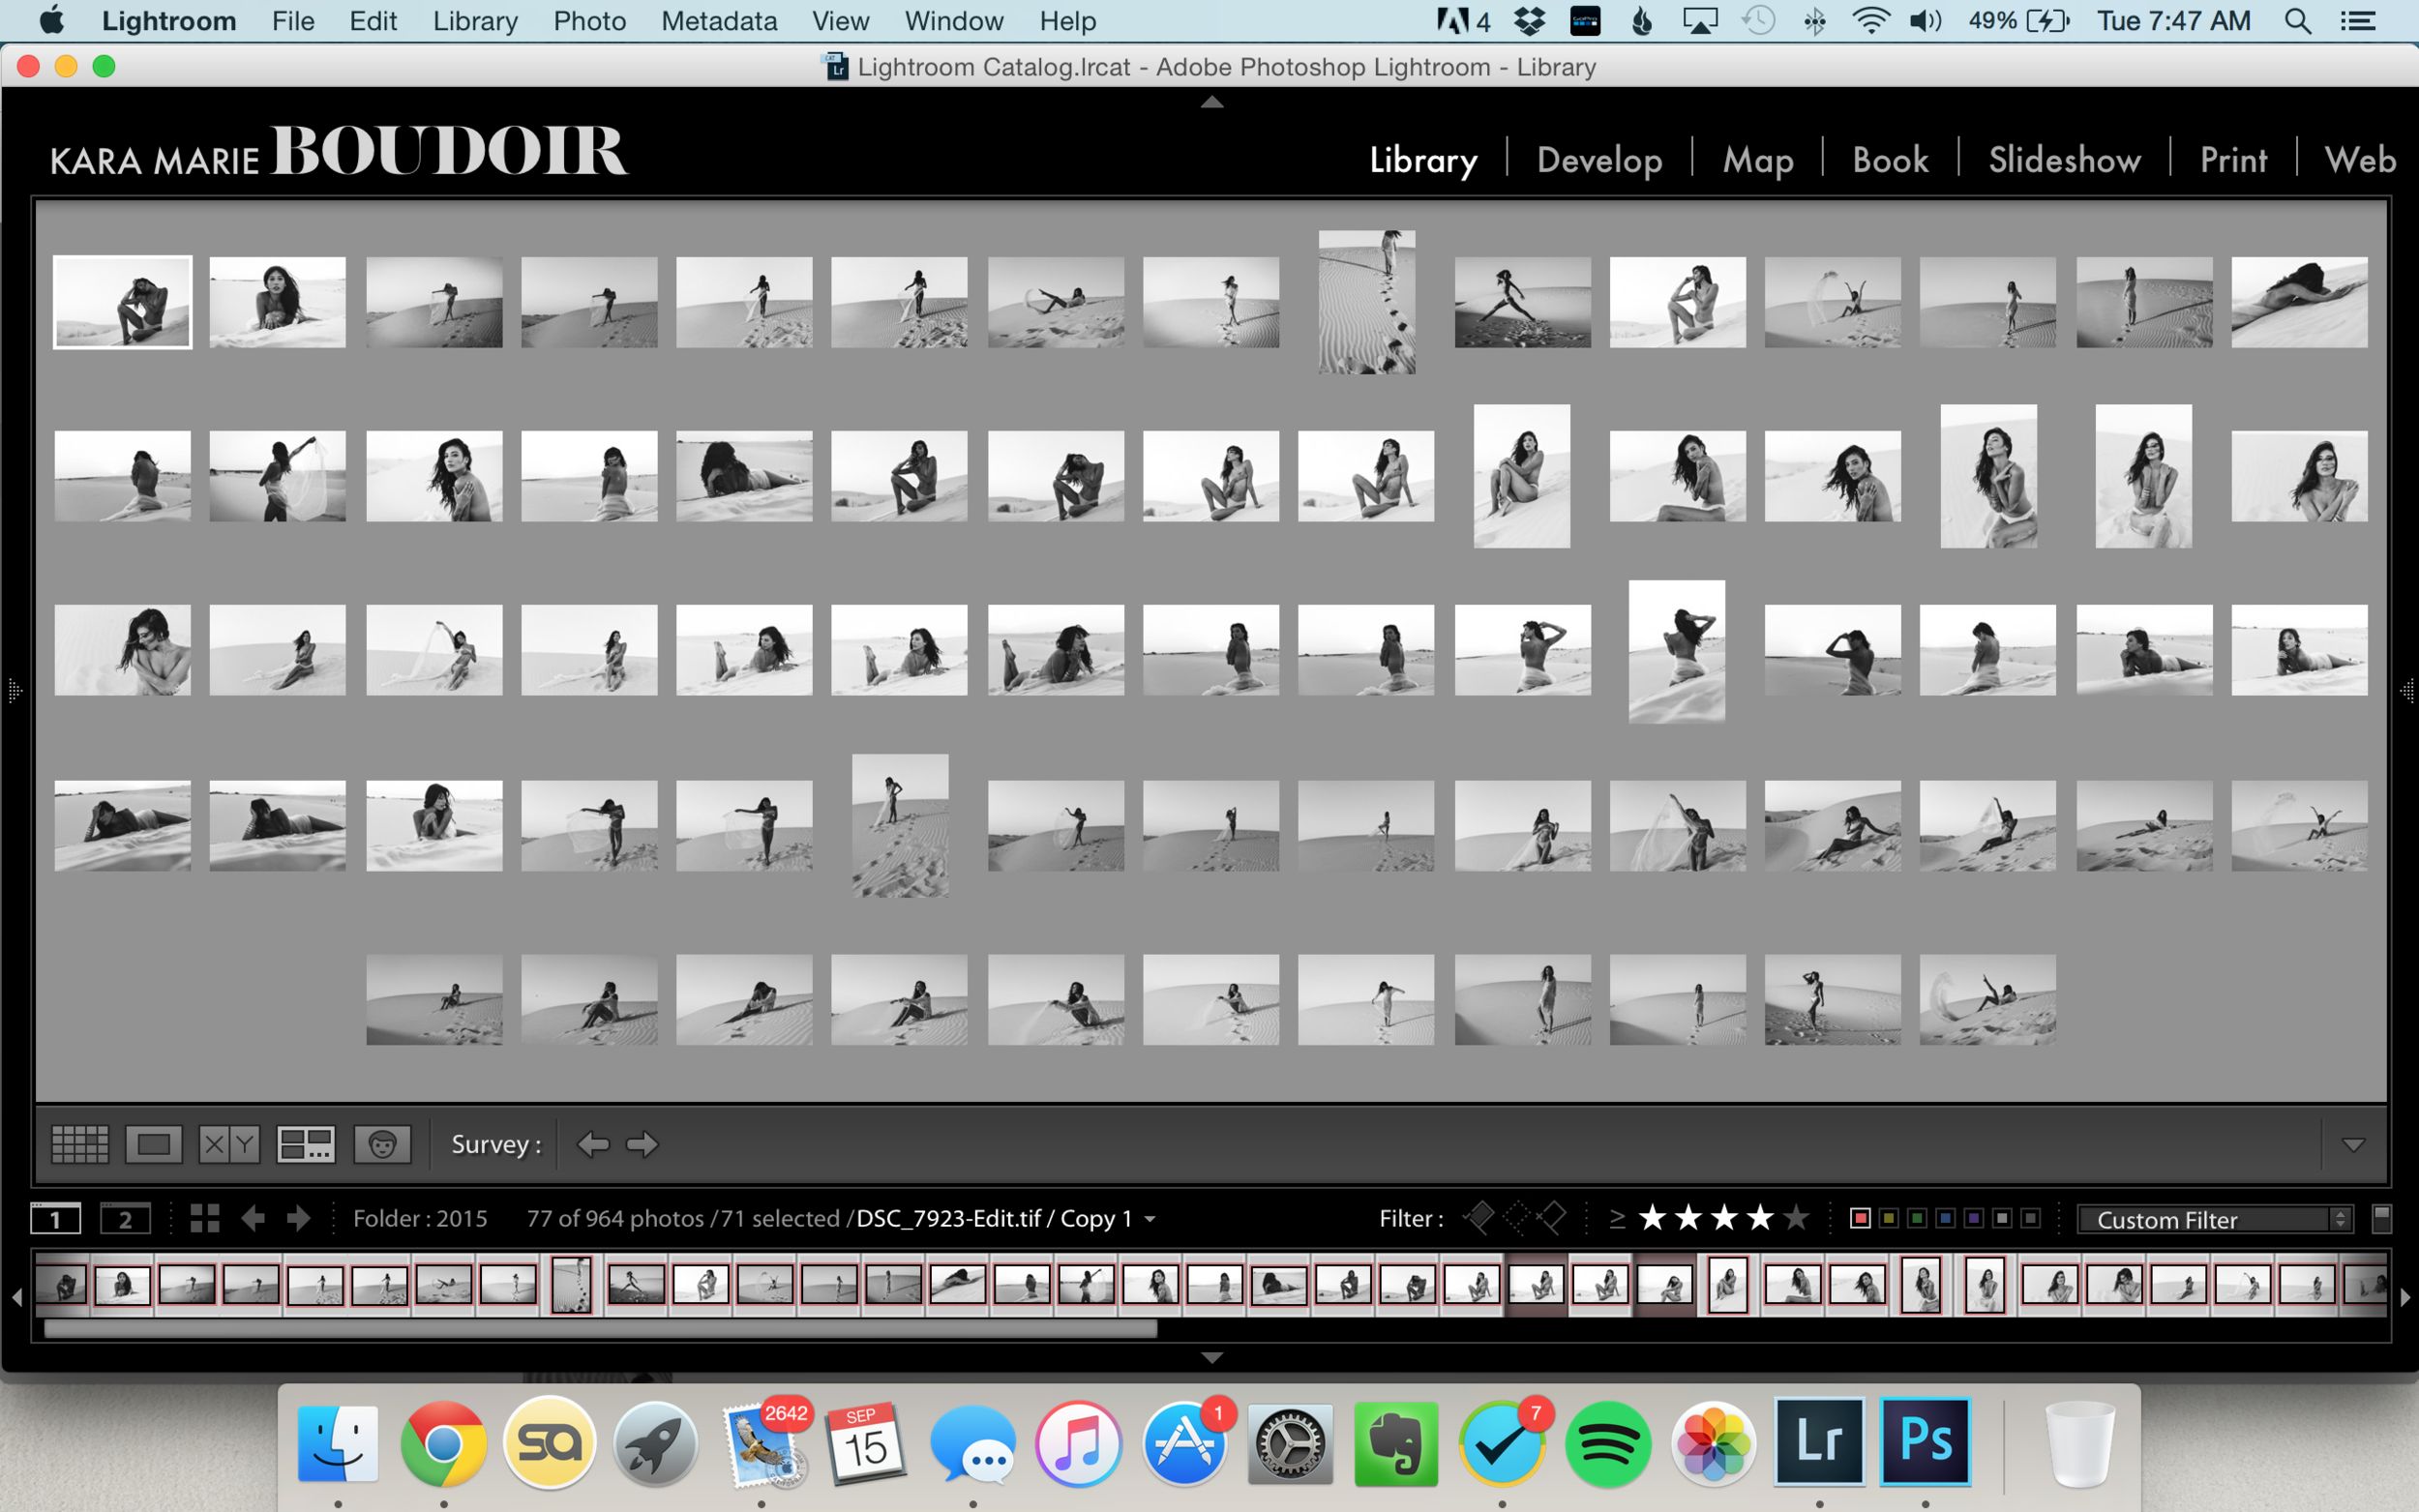 A sample screen of a full collection (from yesterday's blog post! If you haven't, go check it out!)